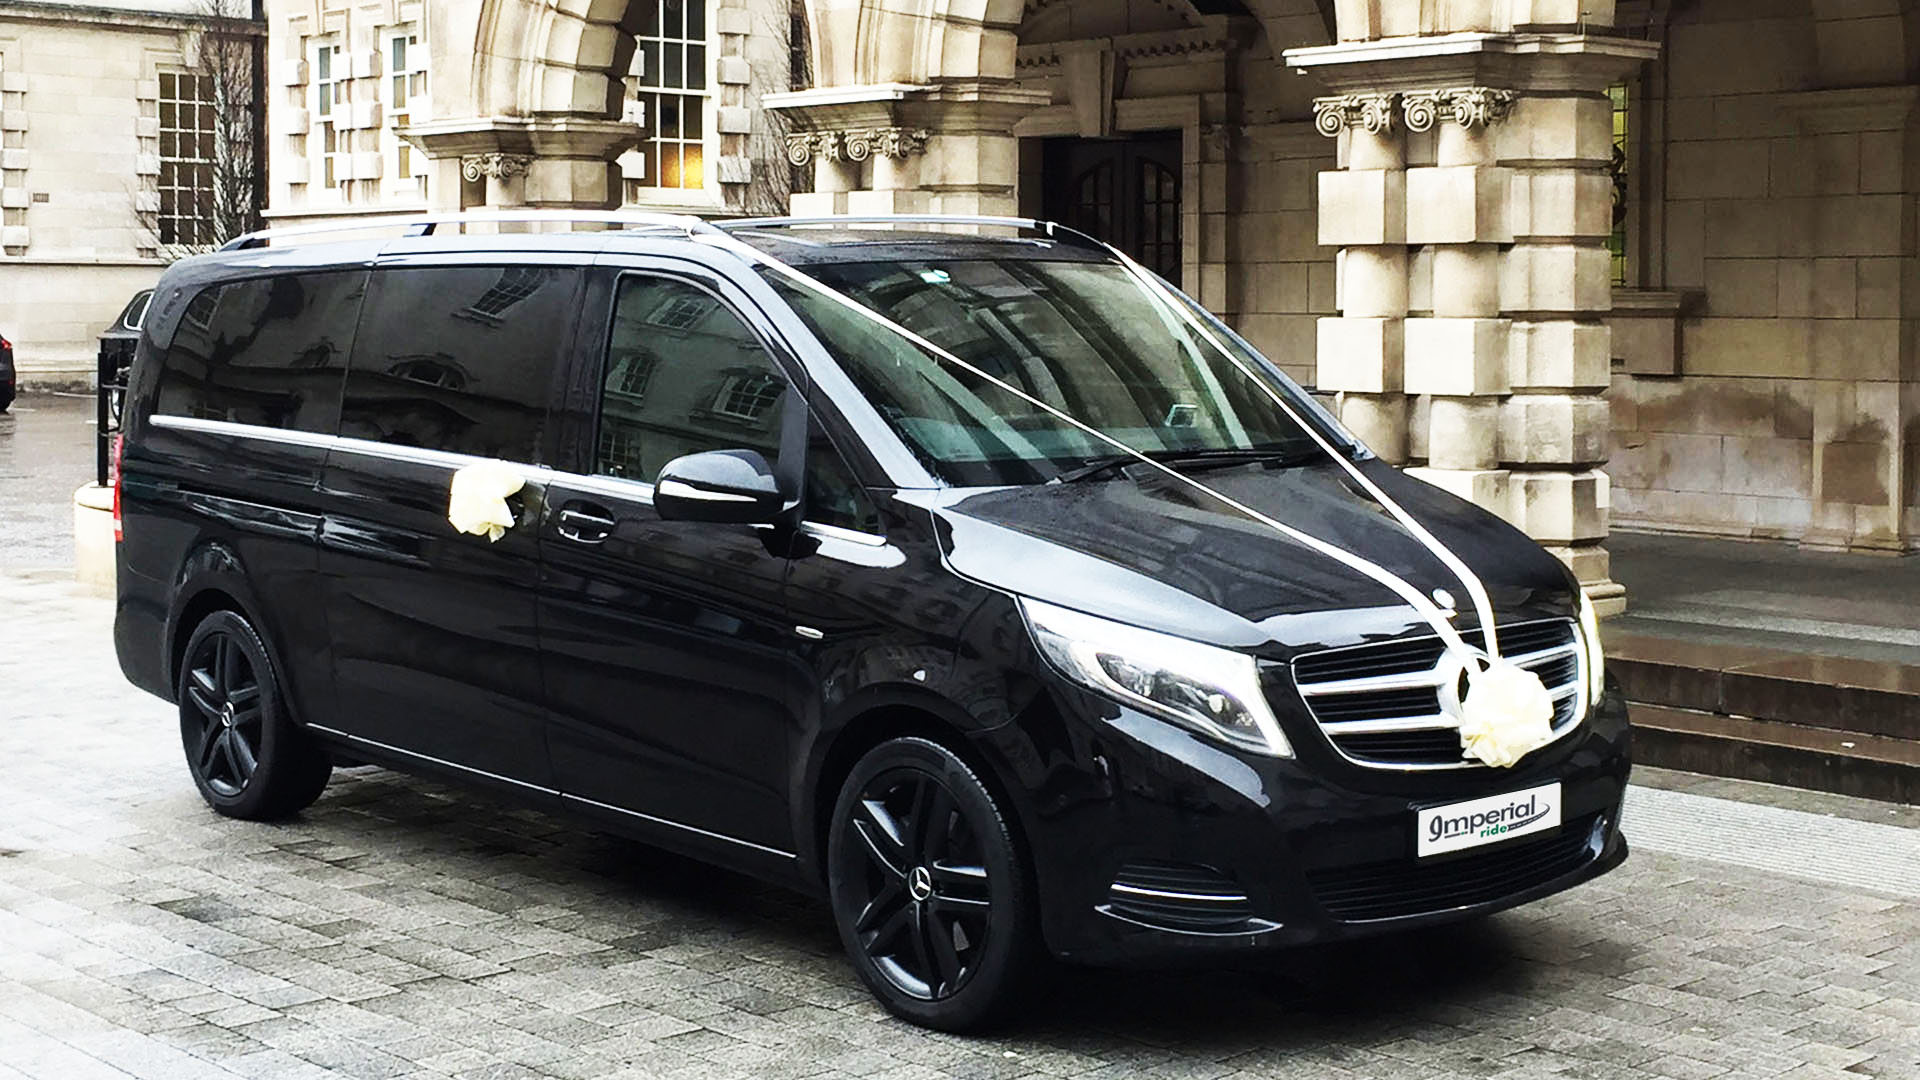 v-class-wedding-hire-in-islington